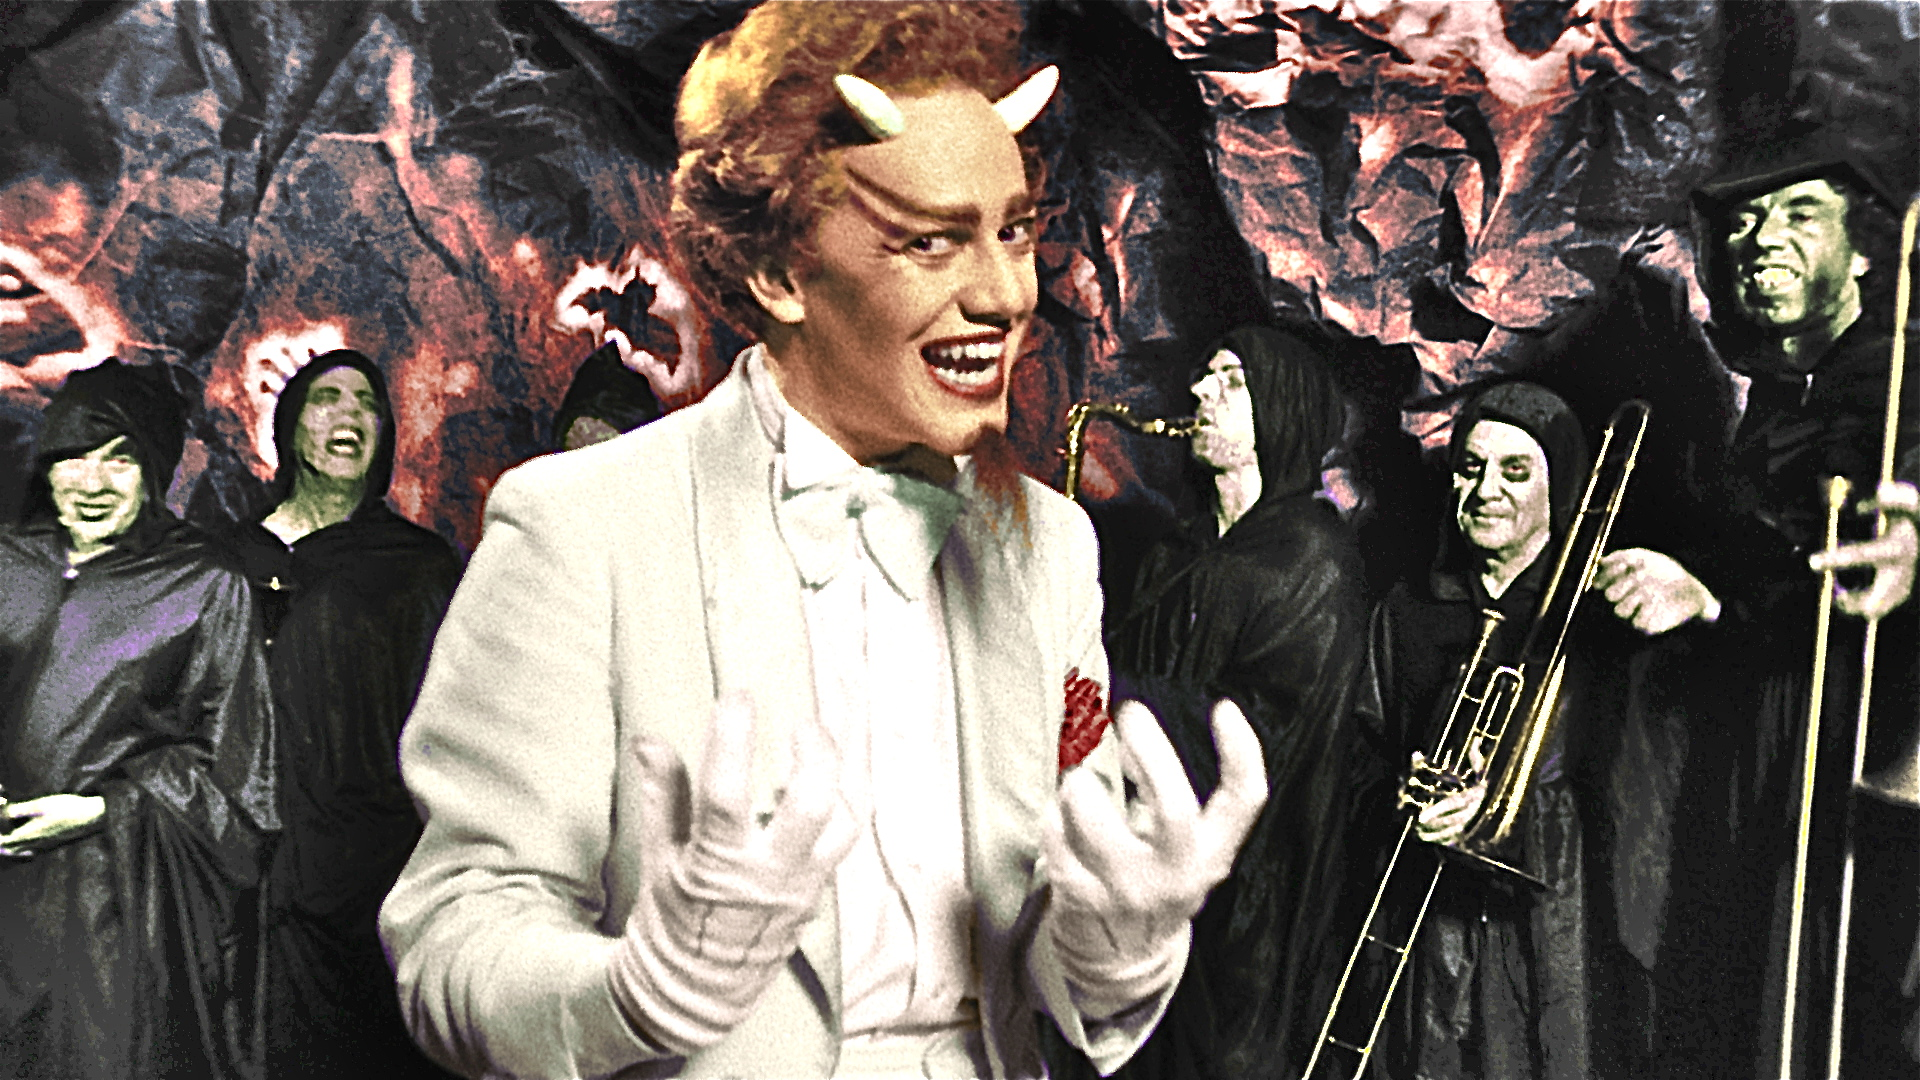 Composer Danny Elfman, as a grinning devil in his brother's movie Forbidden Zone, wears a white suit and a red wig, and stands in front of a band of horn-clasping musicians in green-skin makeup and black cultist robes.